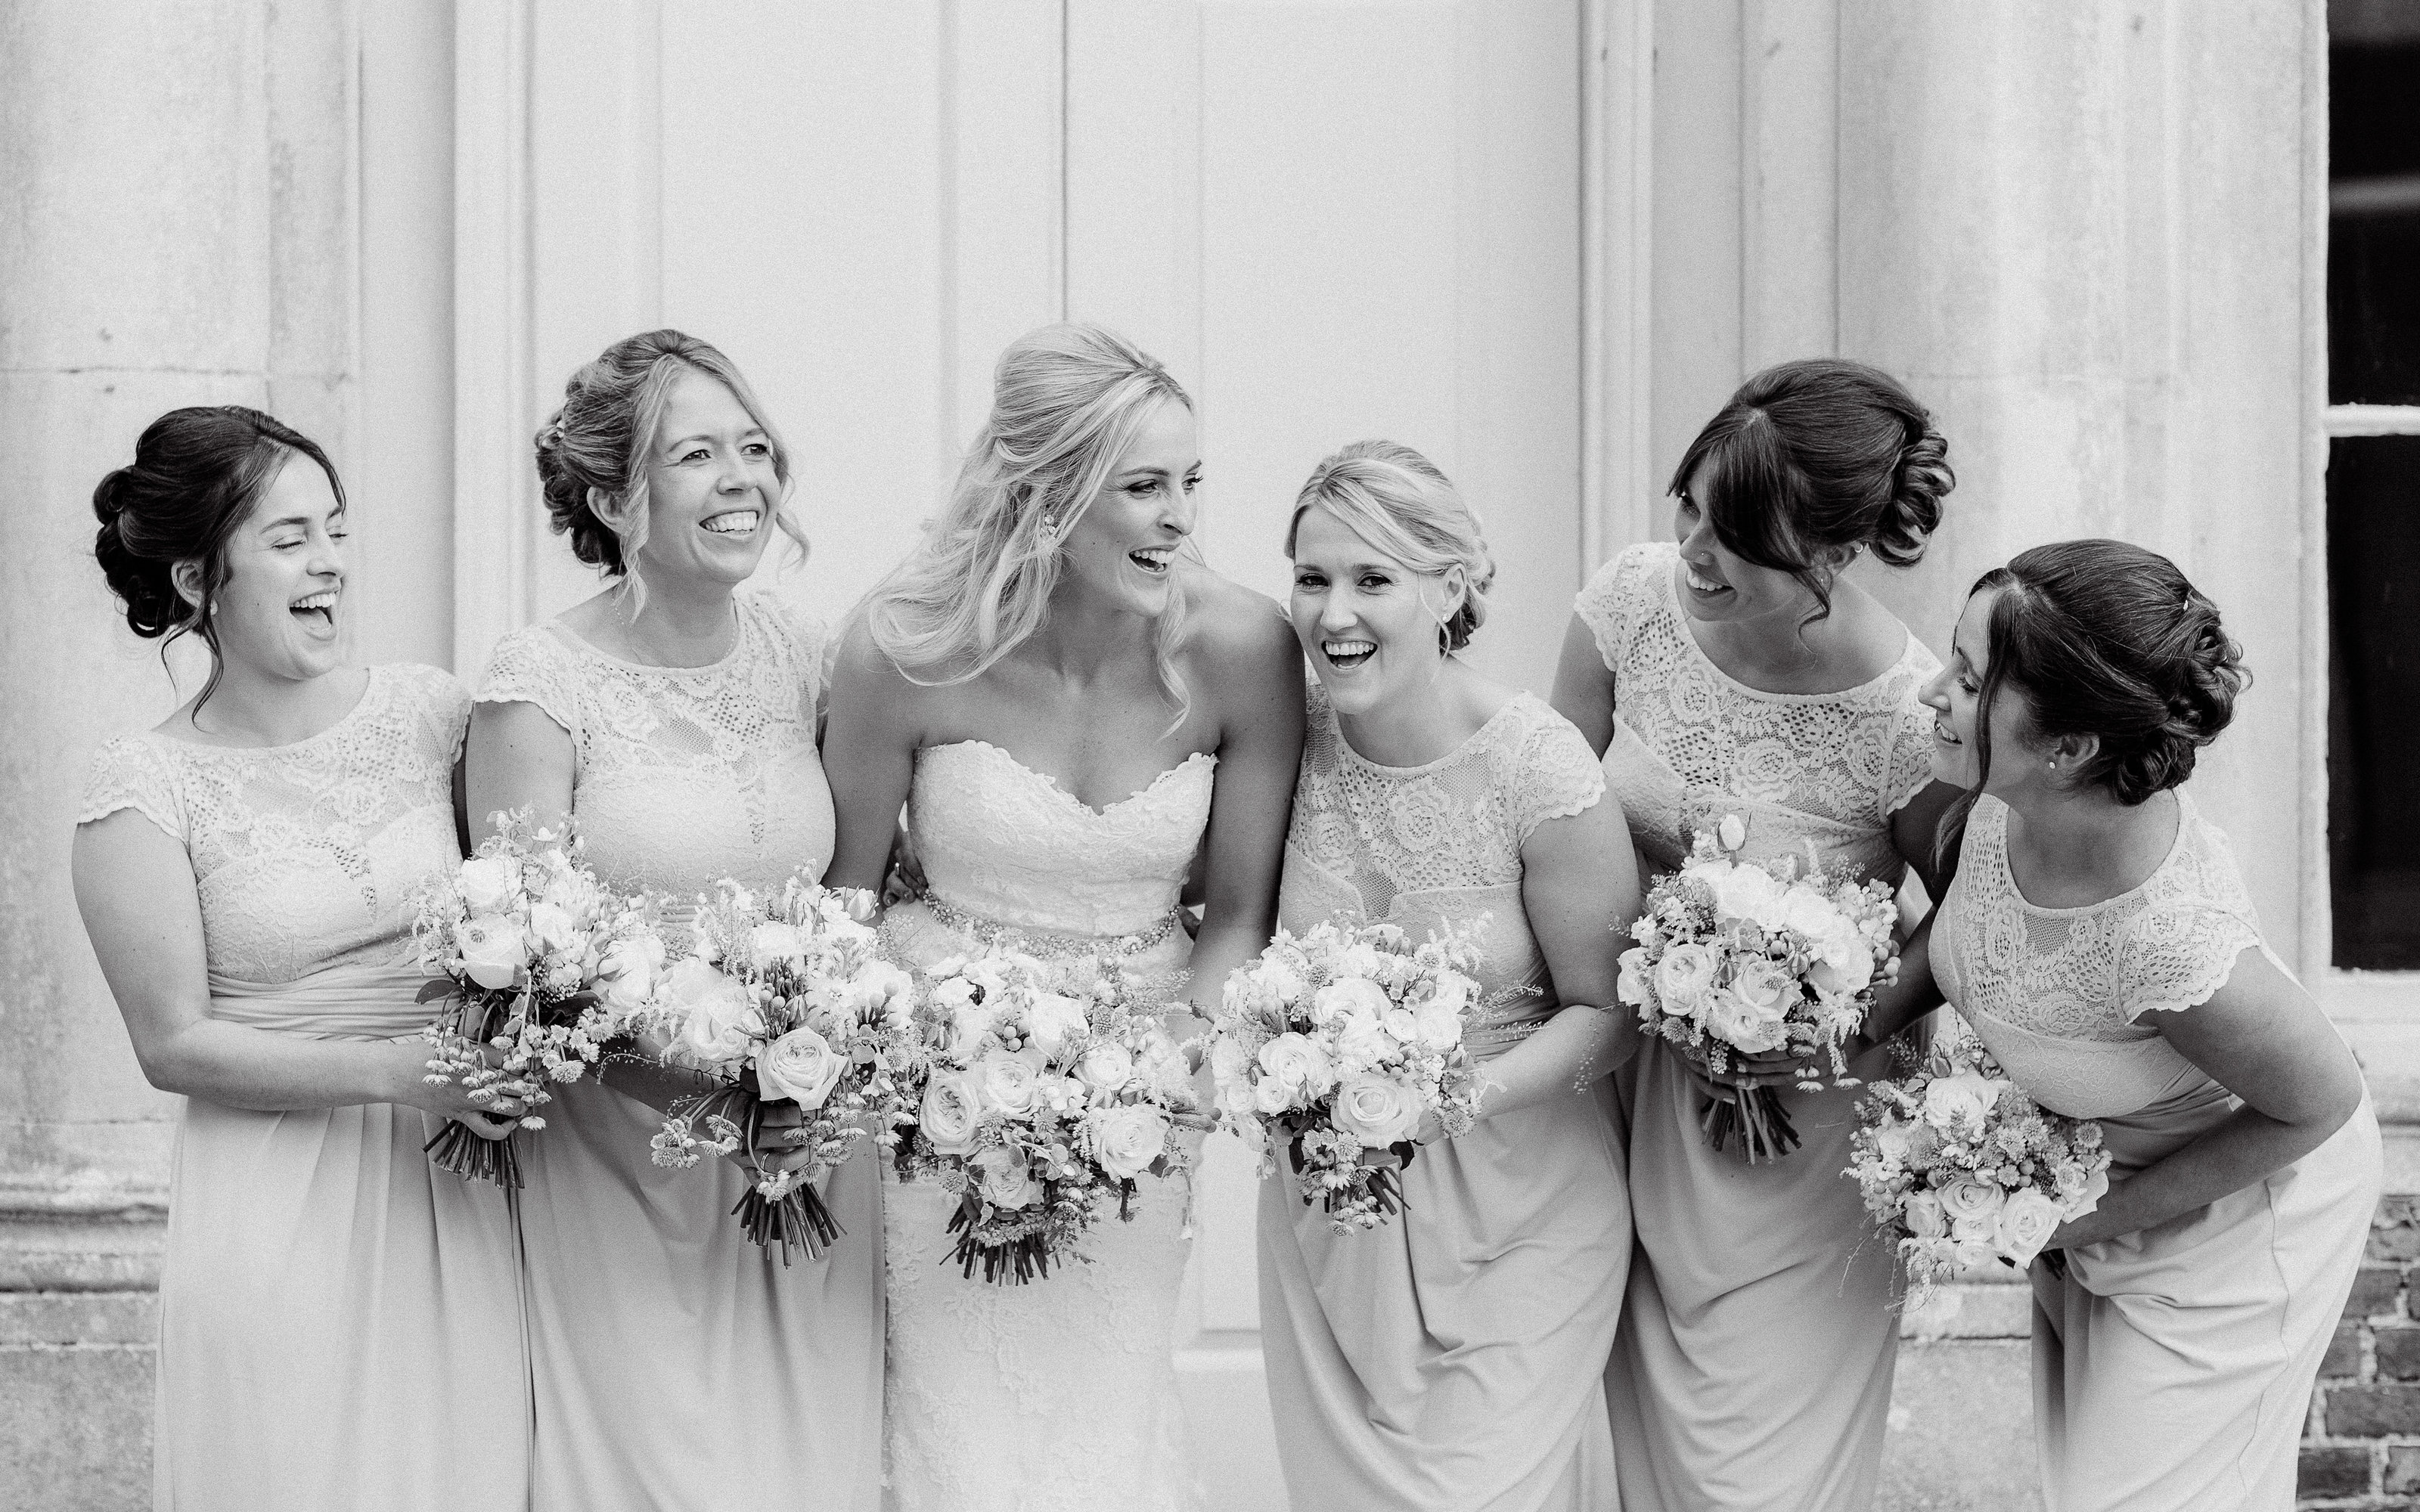 Beautiful bridal party looking at each other laughing in this black and white photo taken by Adorlee Photography in Chichester of Bridesmaids gone wild